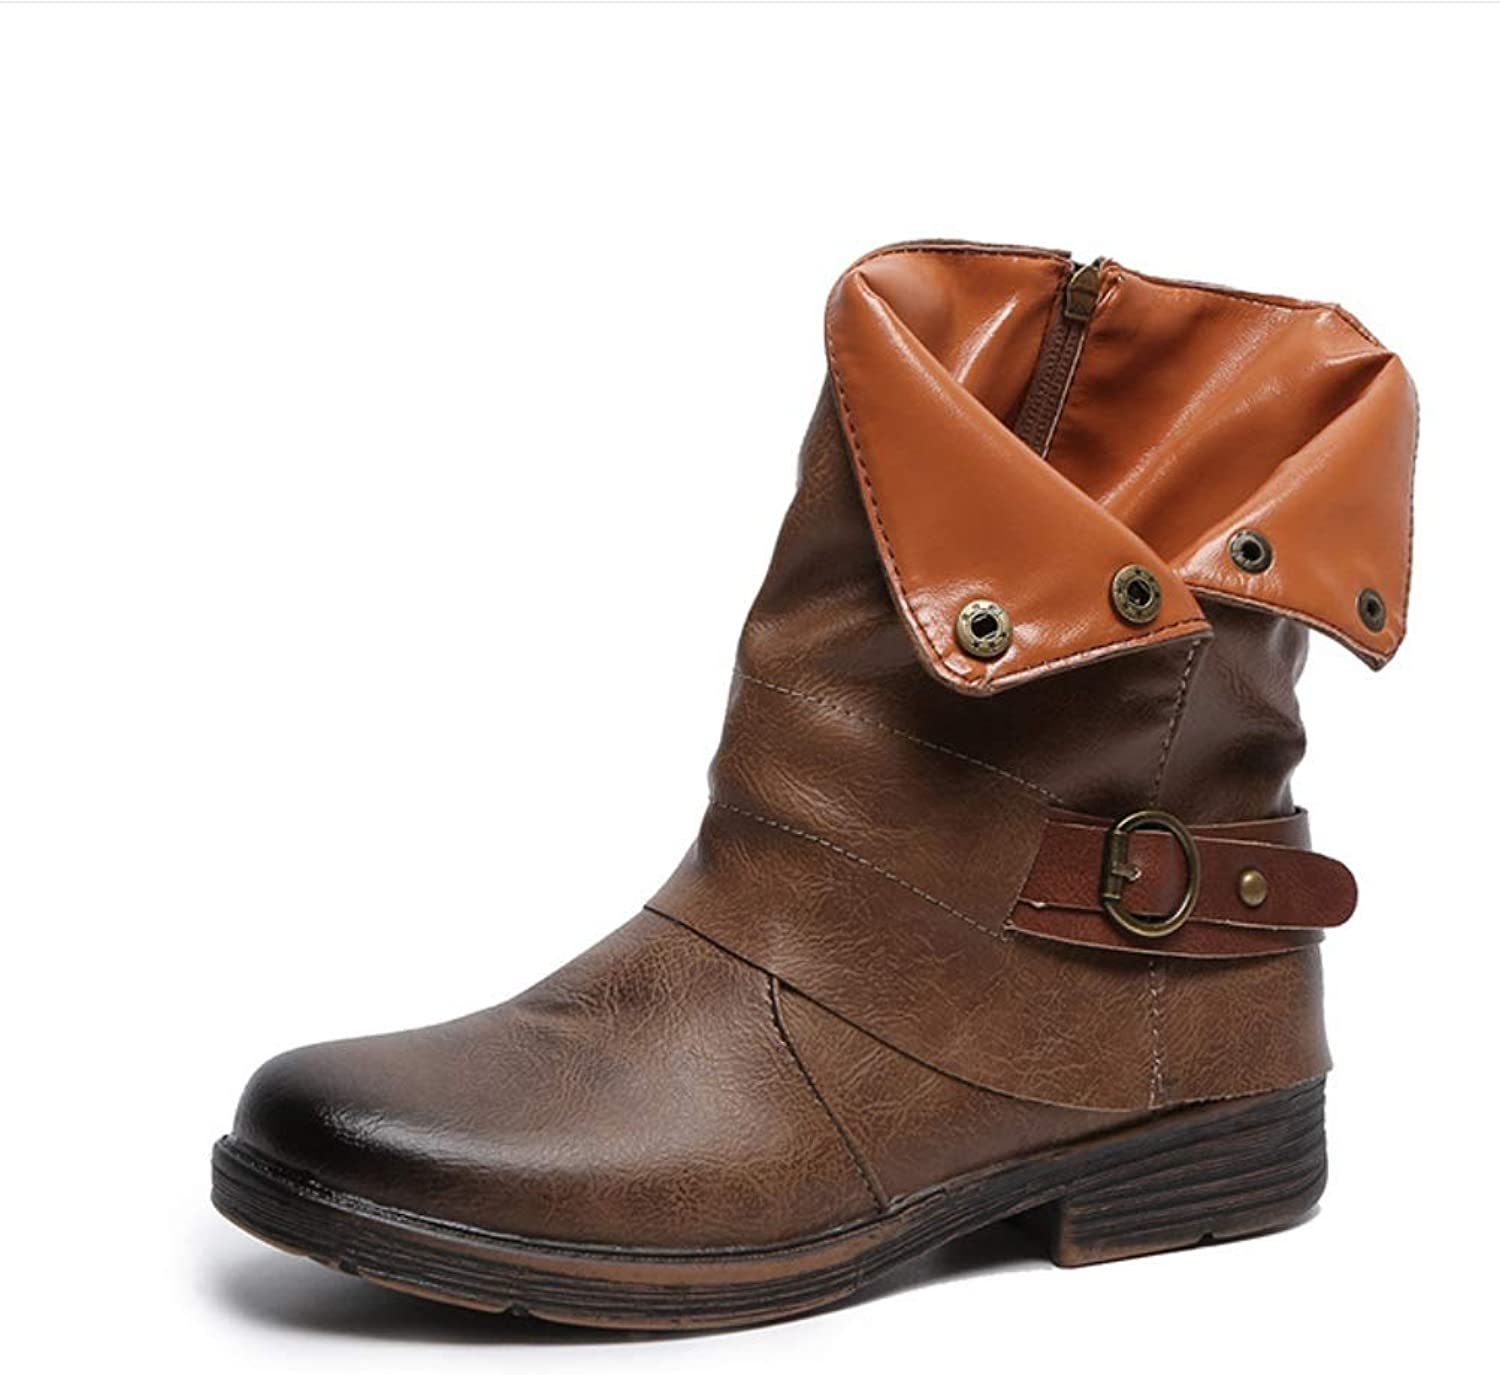 Women Bikes Calf Boots Casual Boots Grip Sole Lady Autumn Winter Army Transer Combat Boots Buckle Artificial Leather Low Heel shoes (UK Size 3-8)